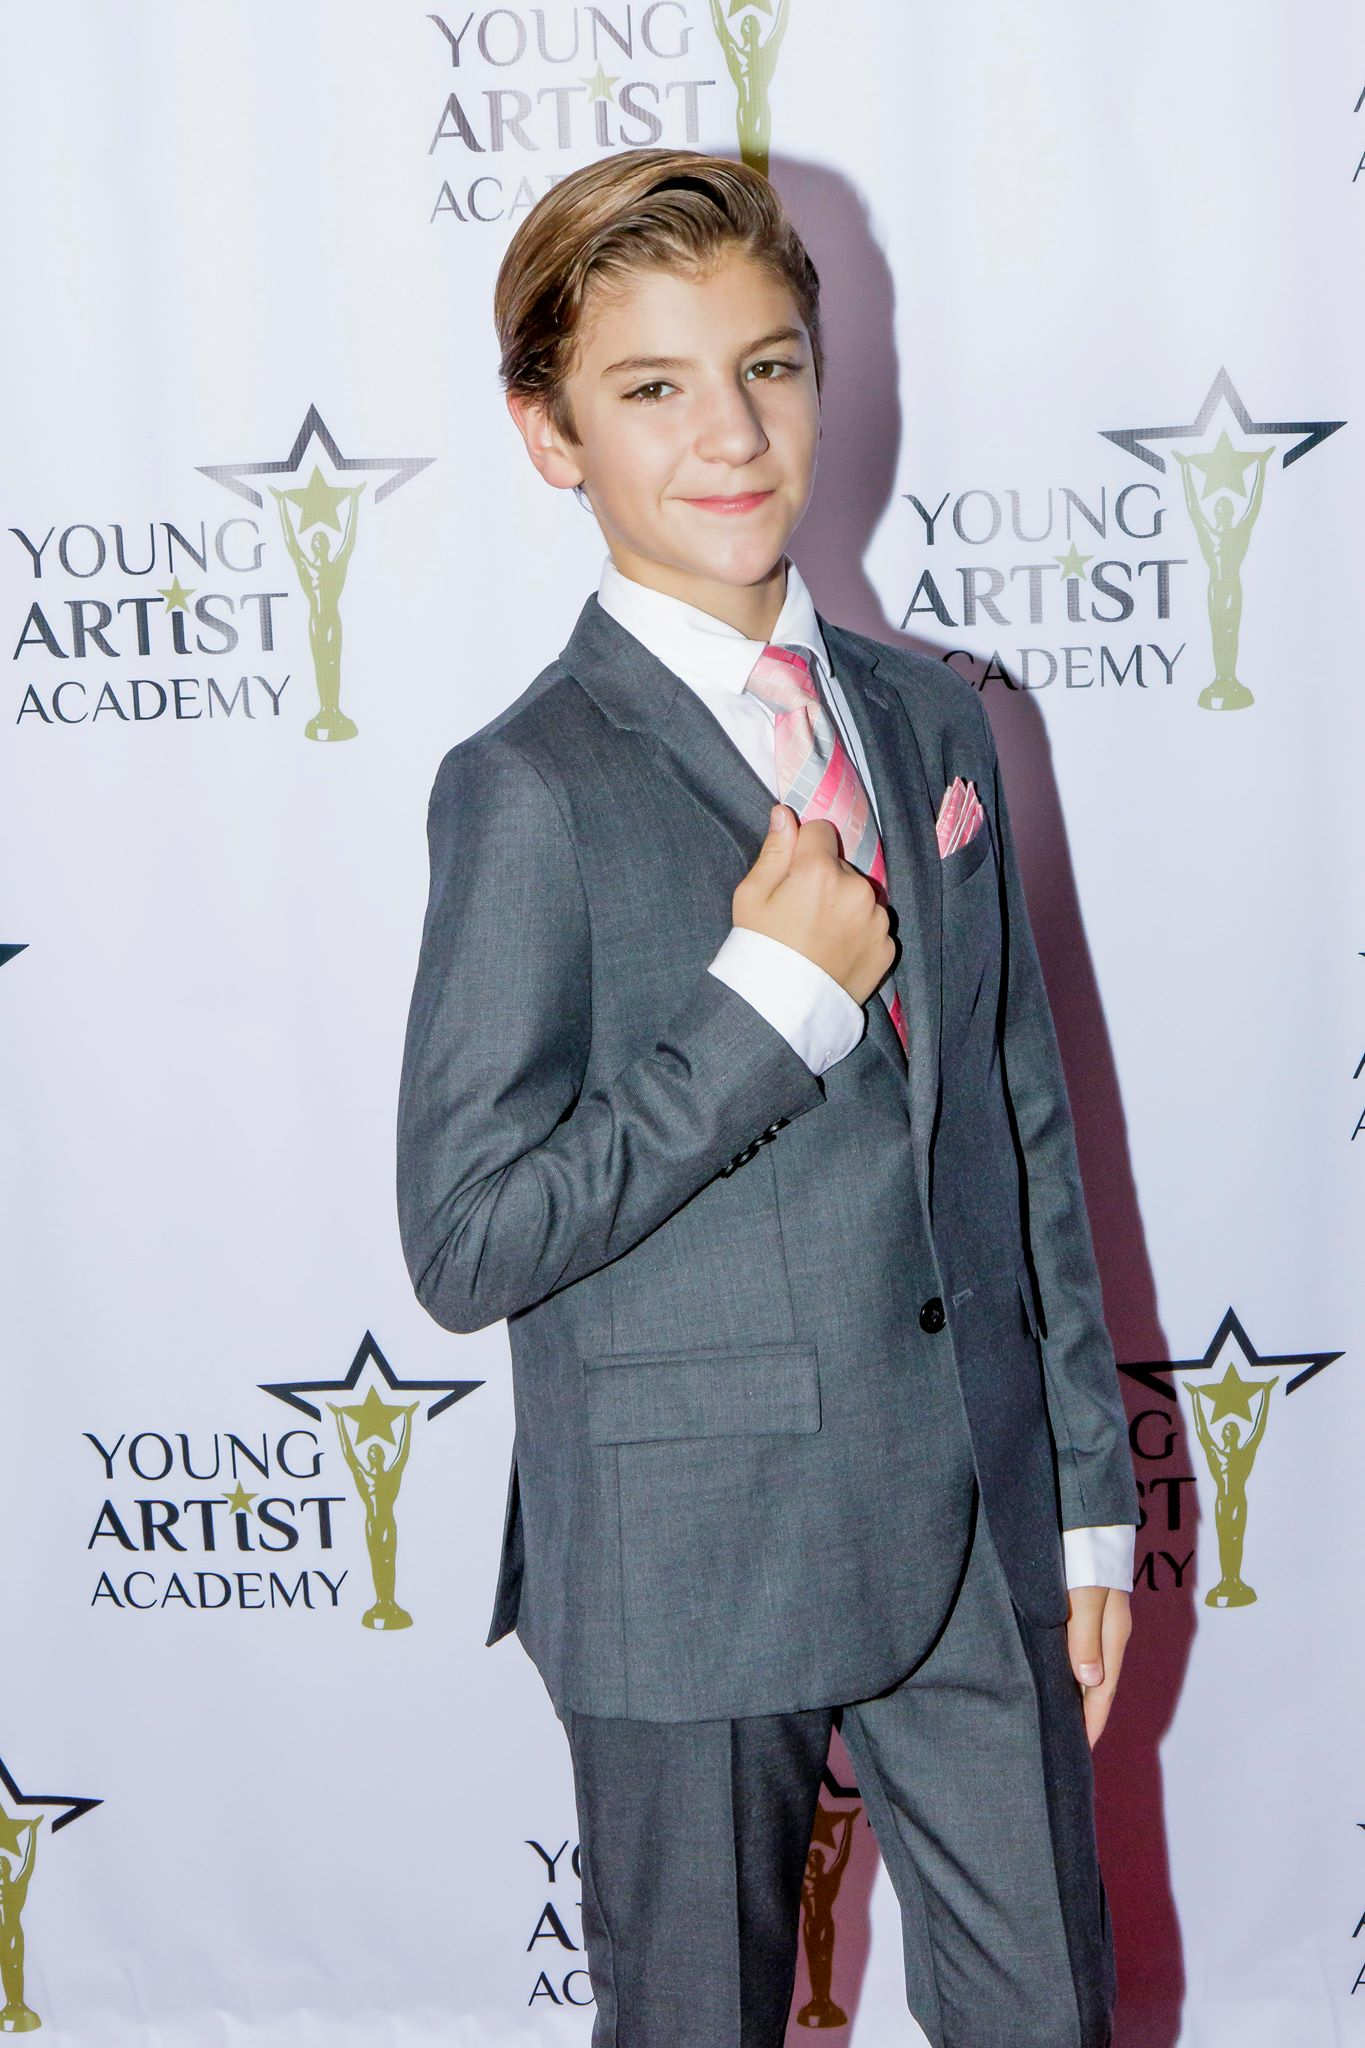 Parker on the Red Carpet at the 2018 Young Artist Academy Awards Photo: Mis Marissa